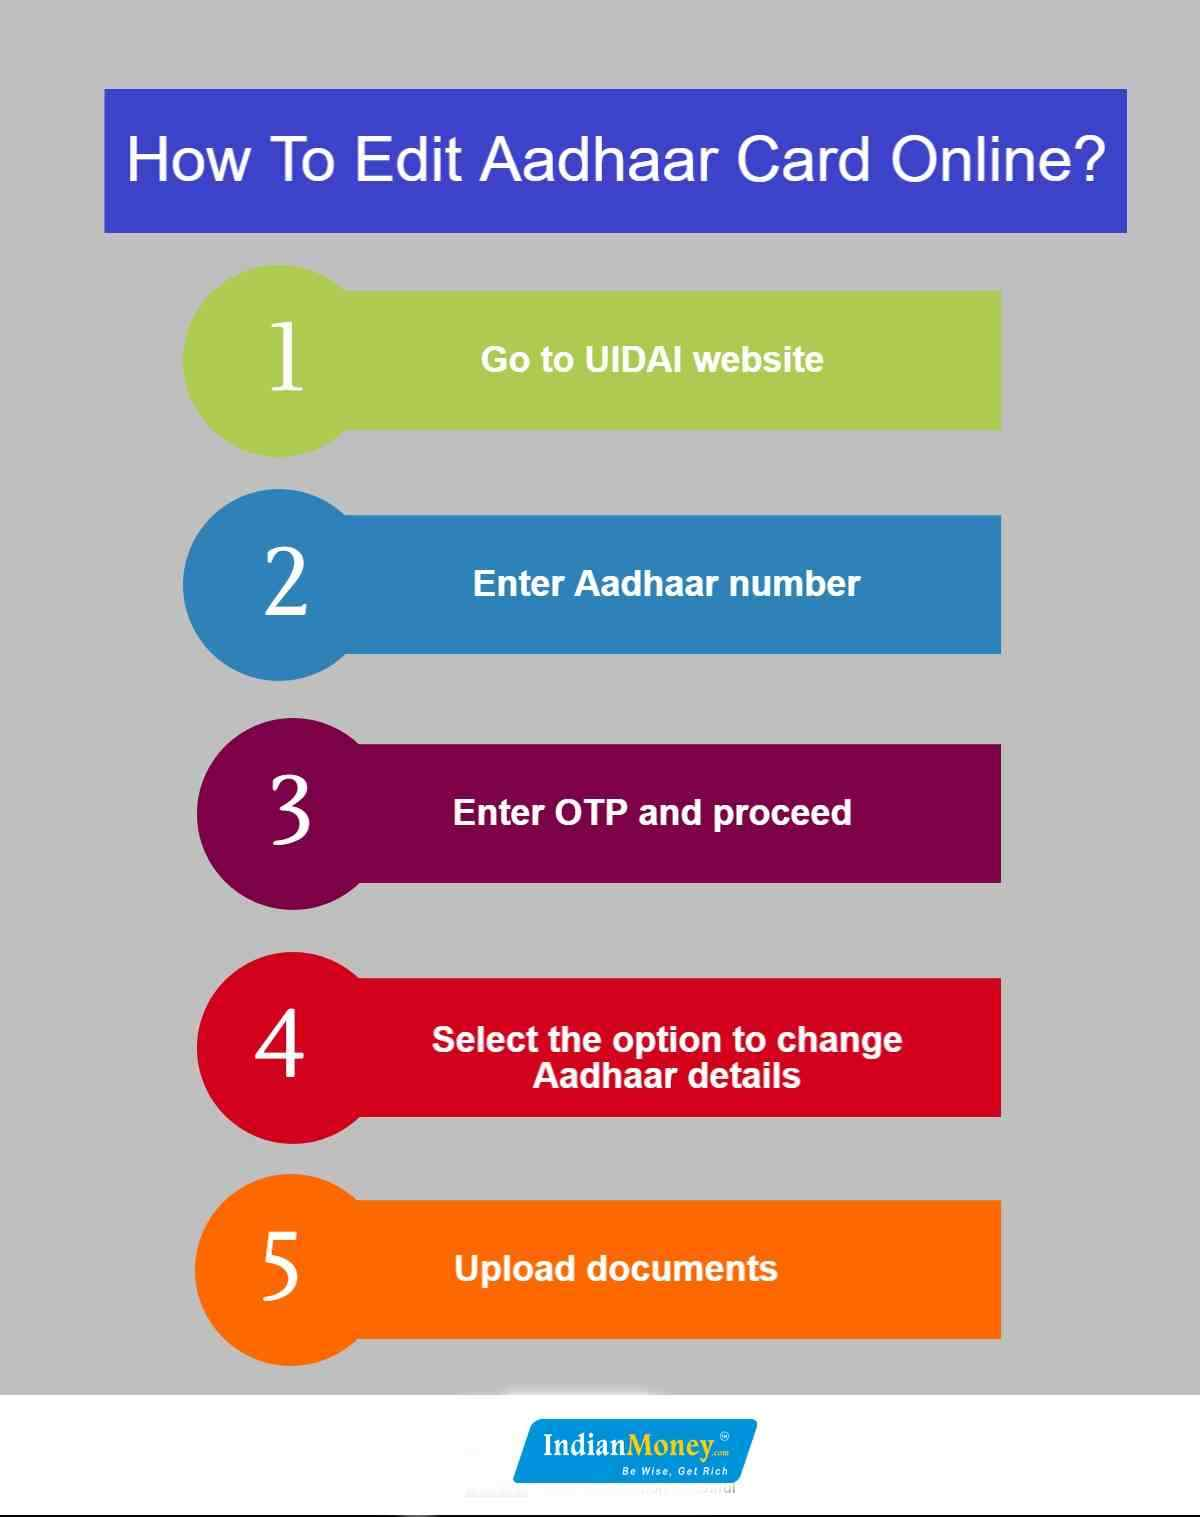 How To Edit Aadhaar Card Online?